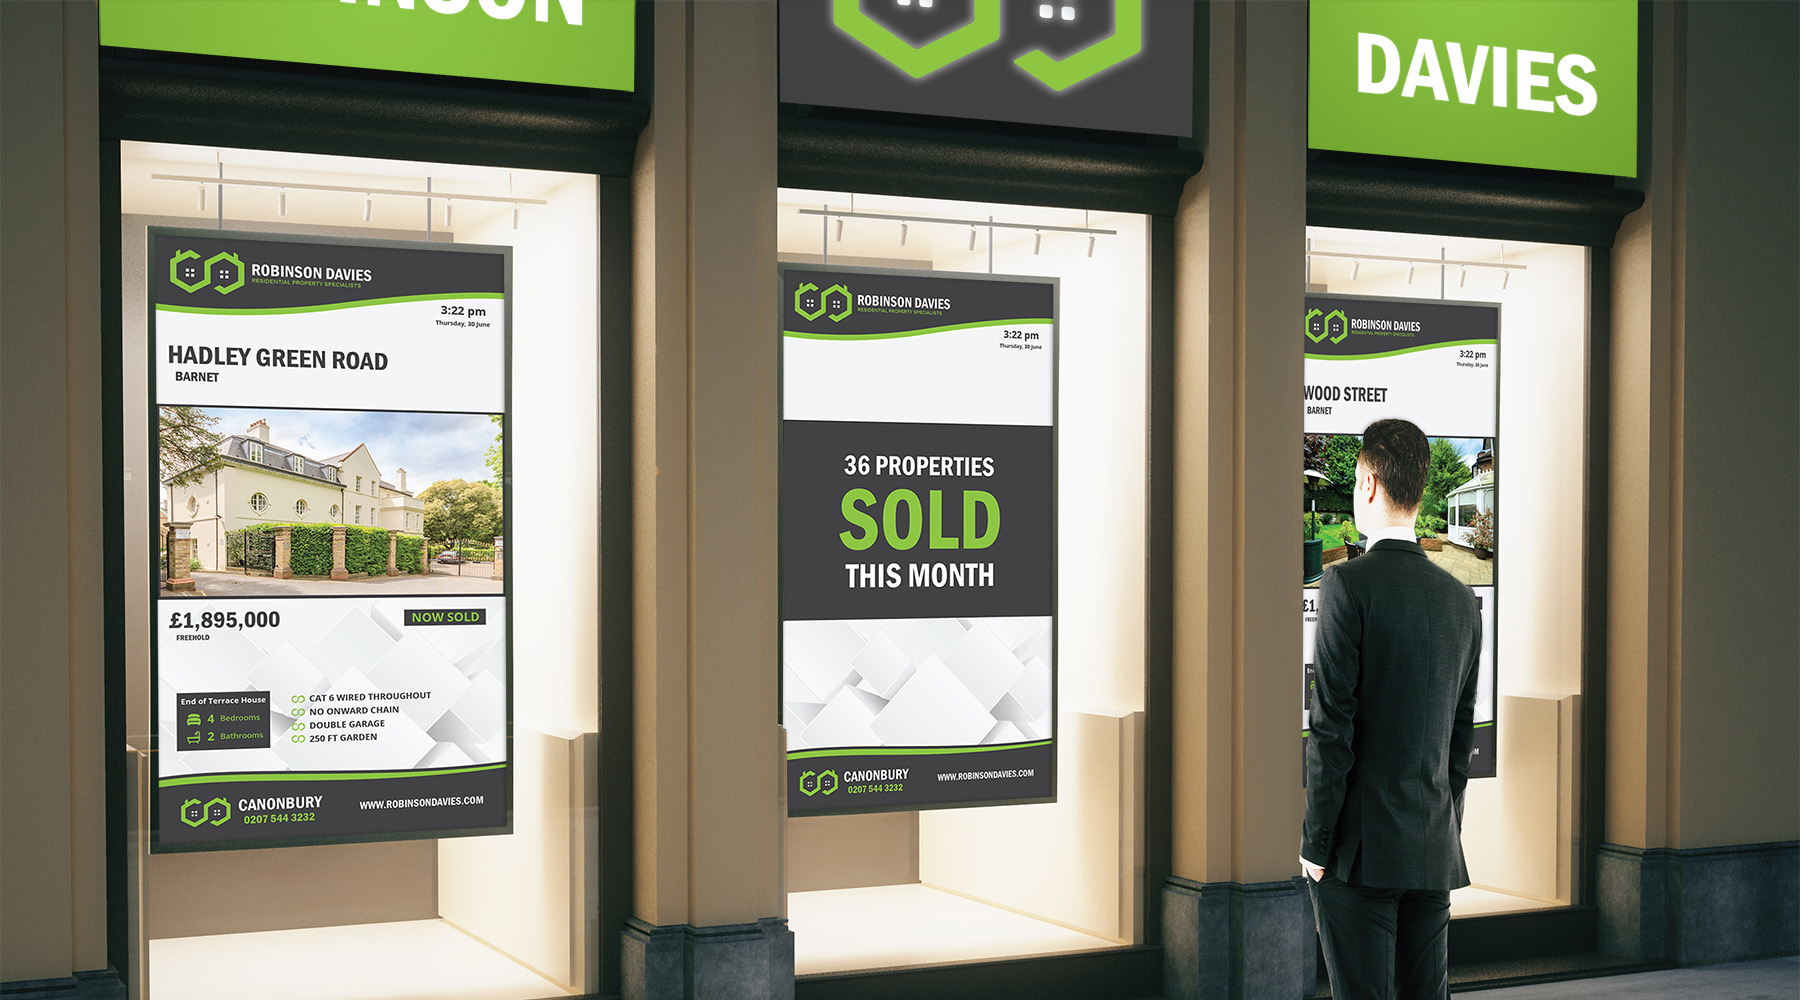 Estate agent digital signage